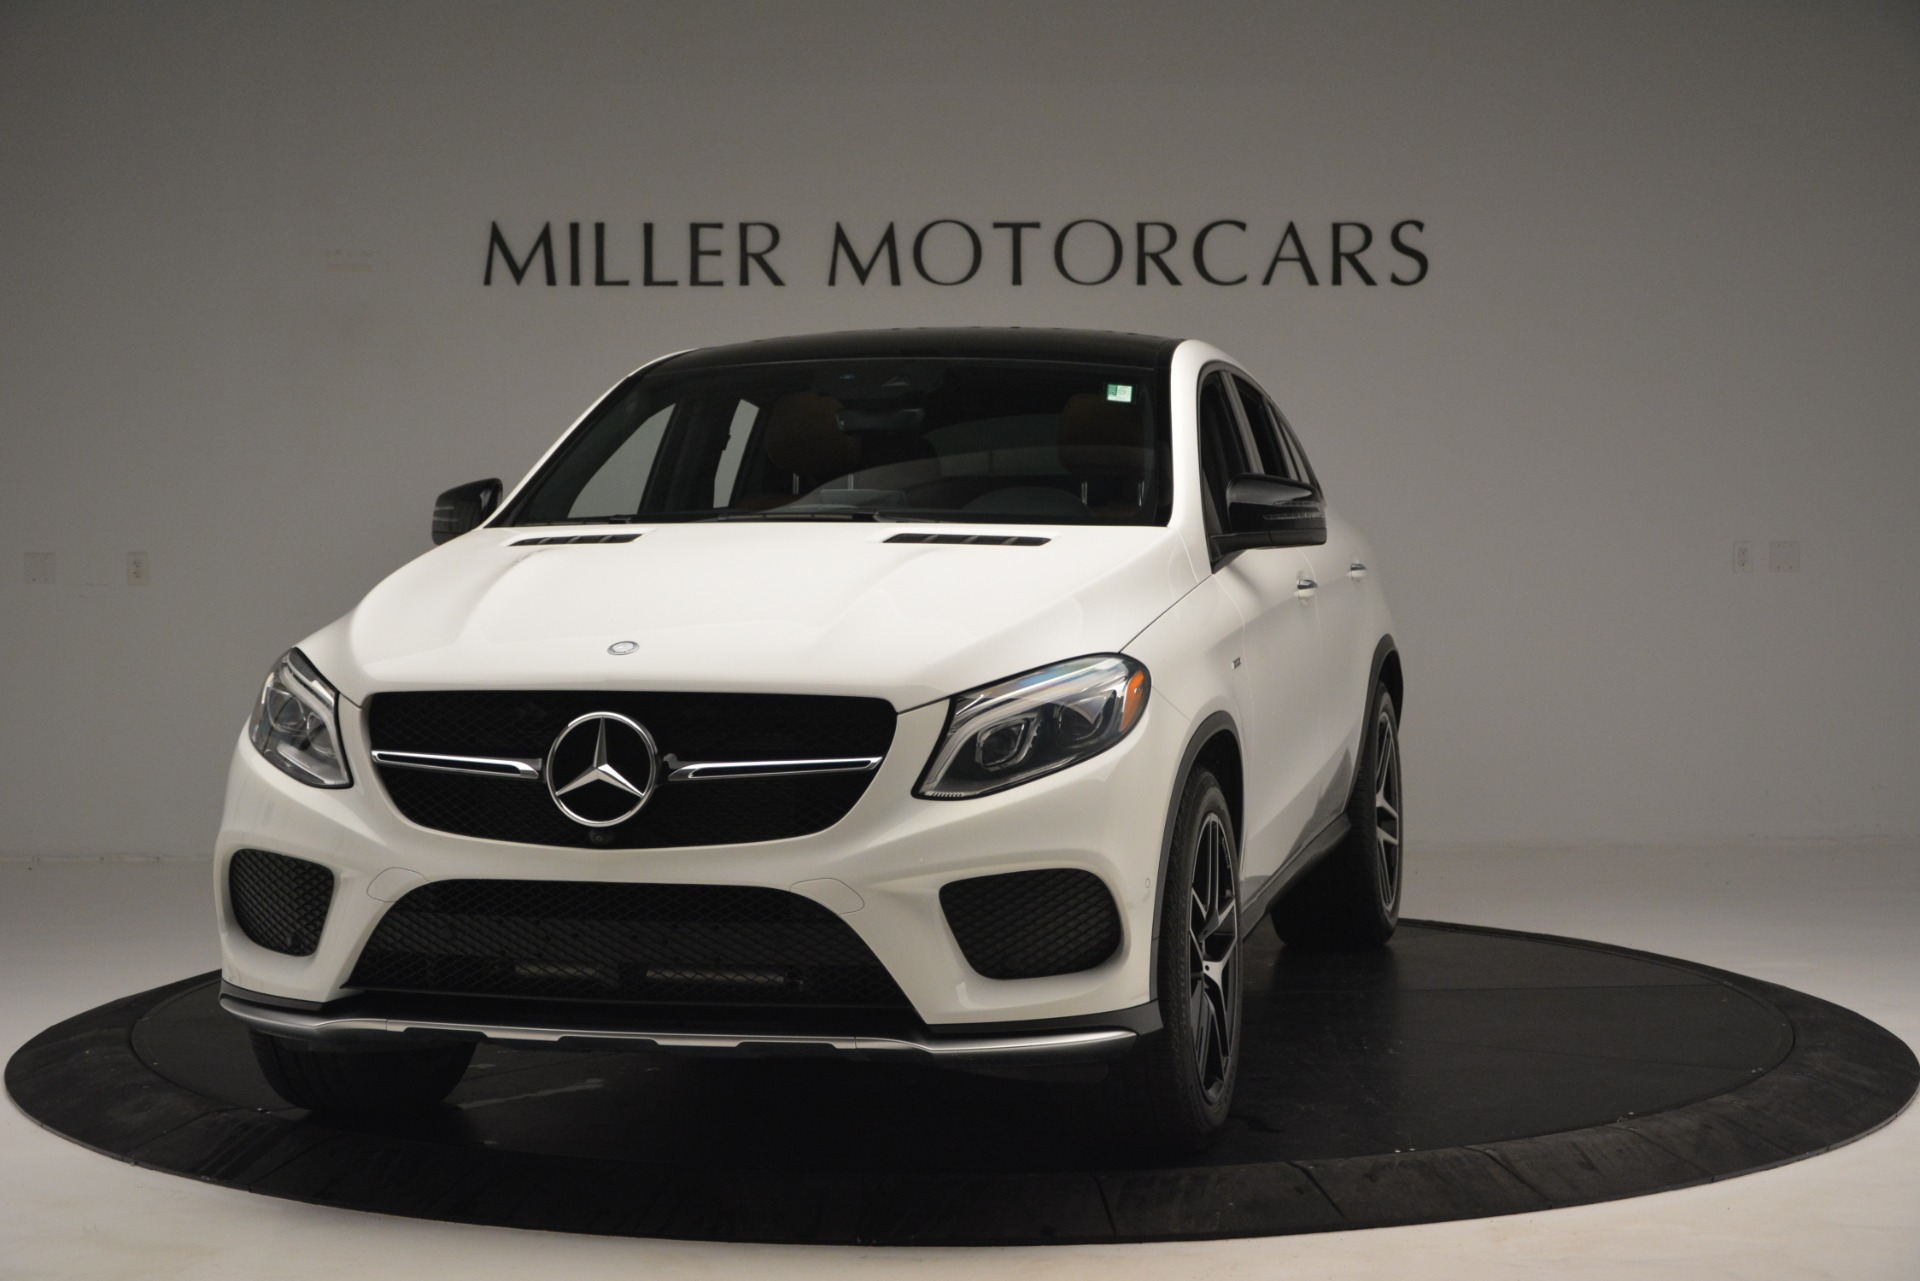 Used 2016 Mercedes-Benz GLE 450 AMG Coupe 4MATIC for sale Sold at Bentley Greenwich in Greenwich CT 06830 1